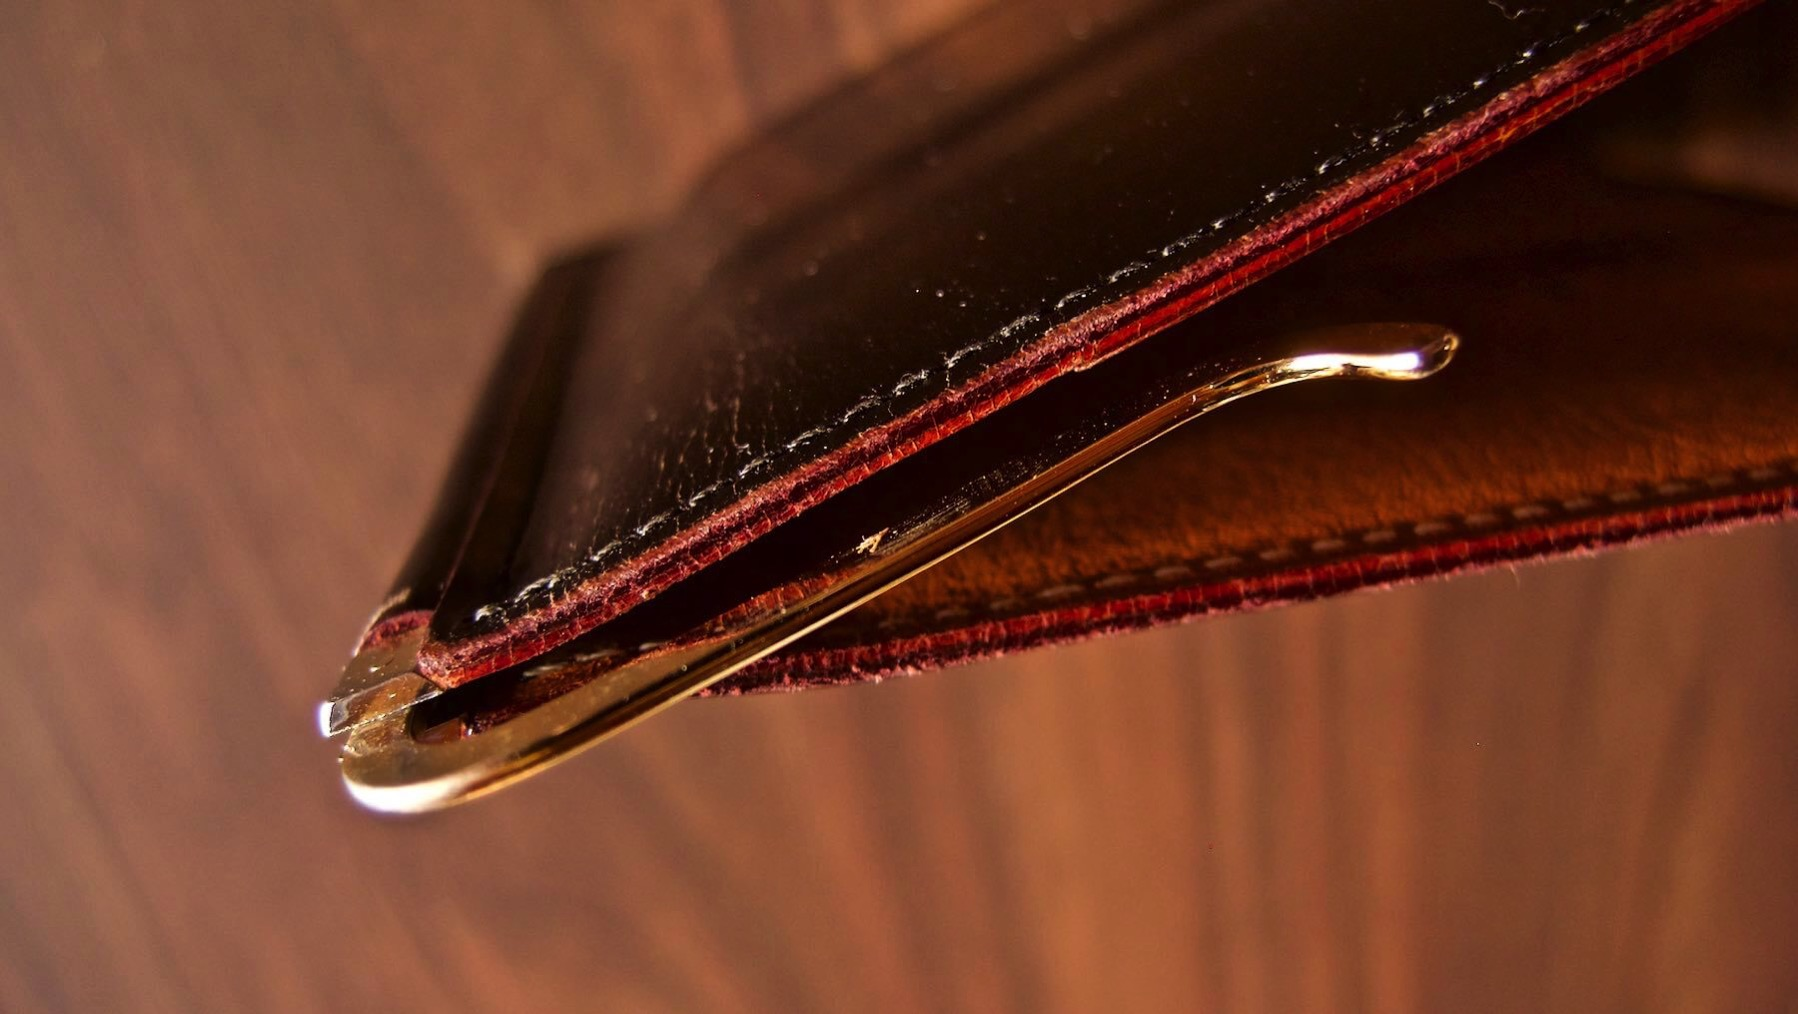 16 GANZO THIN BRIDLE Money clip Five year after aging